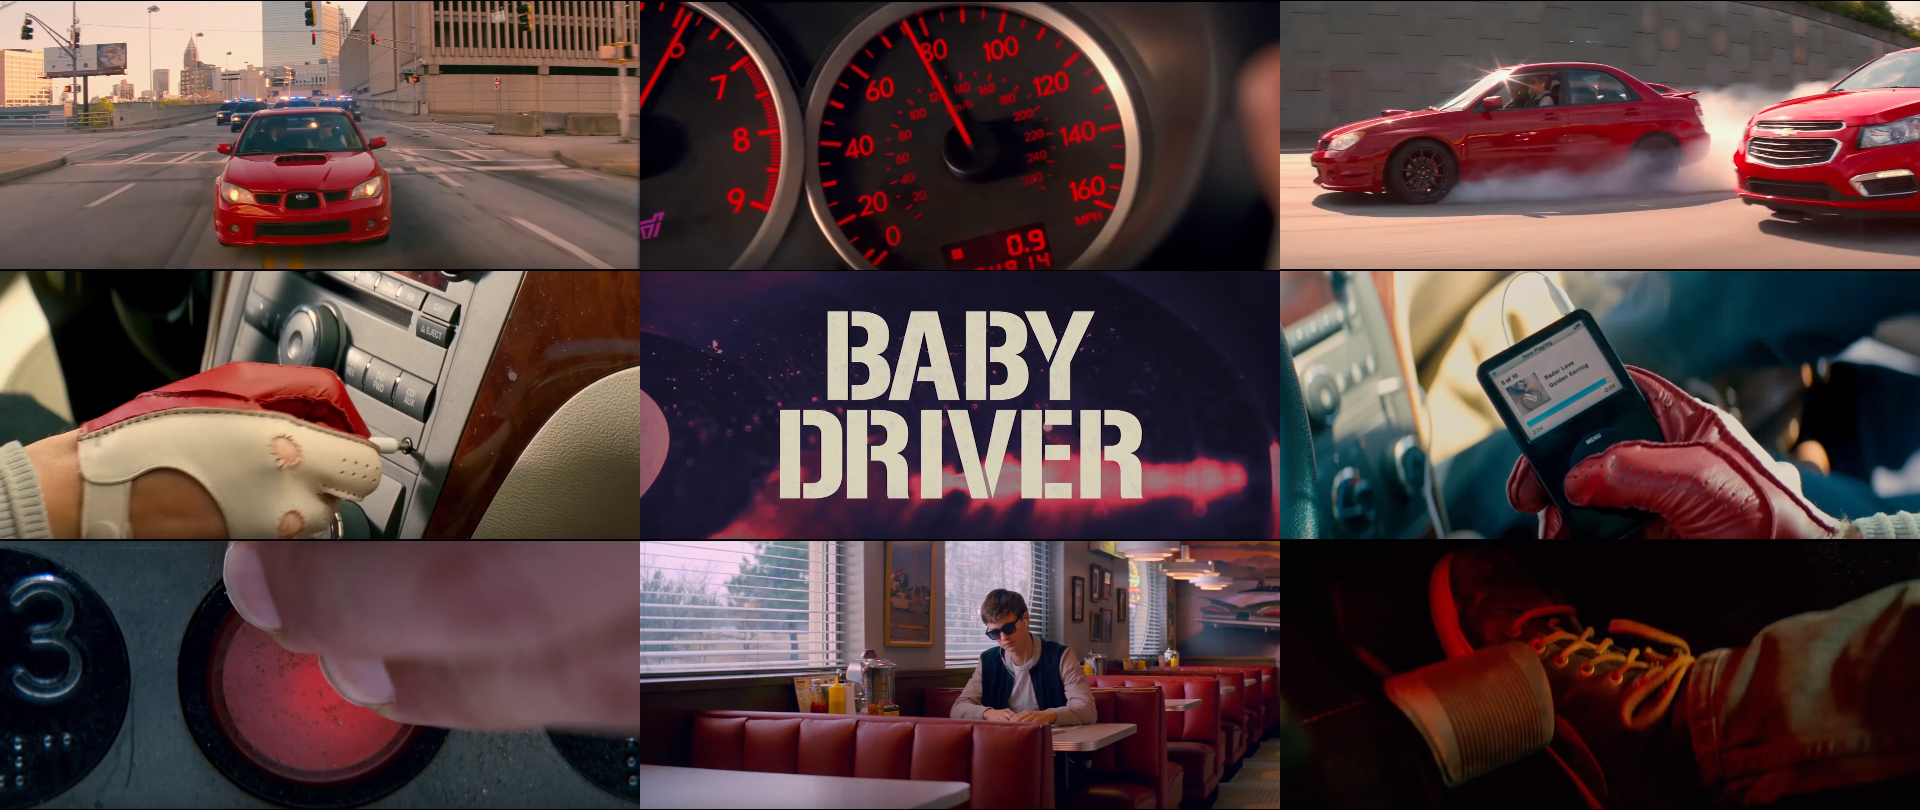 How Edgar Wright uses the color red in Baby Driver